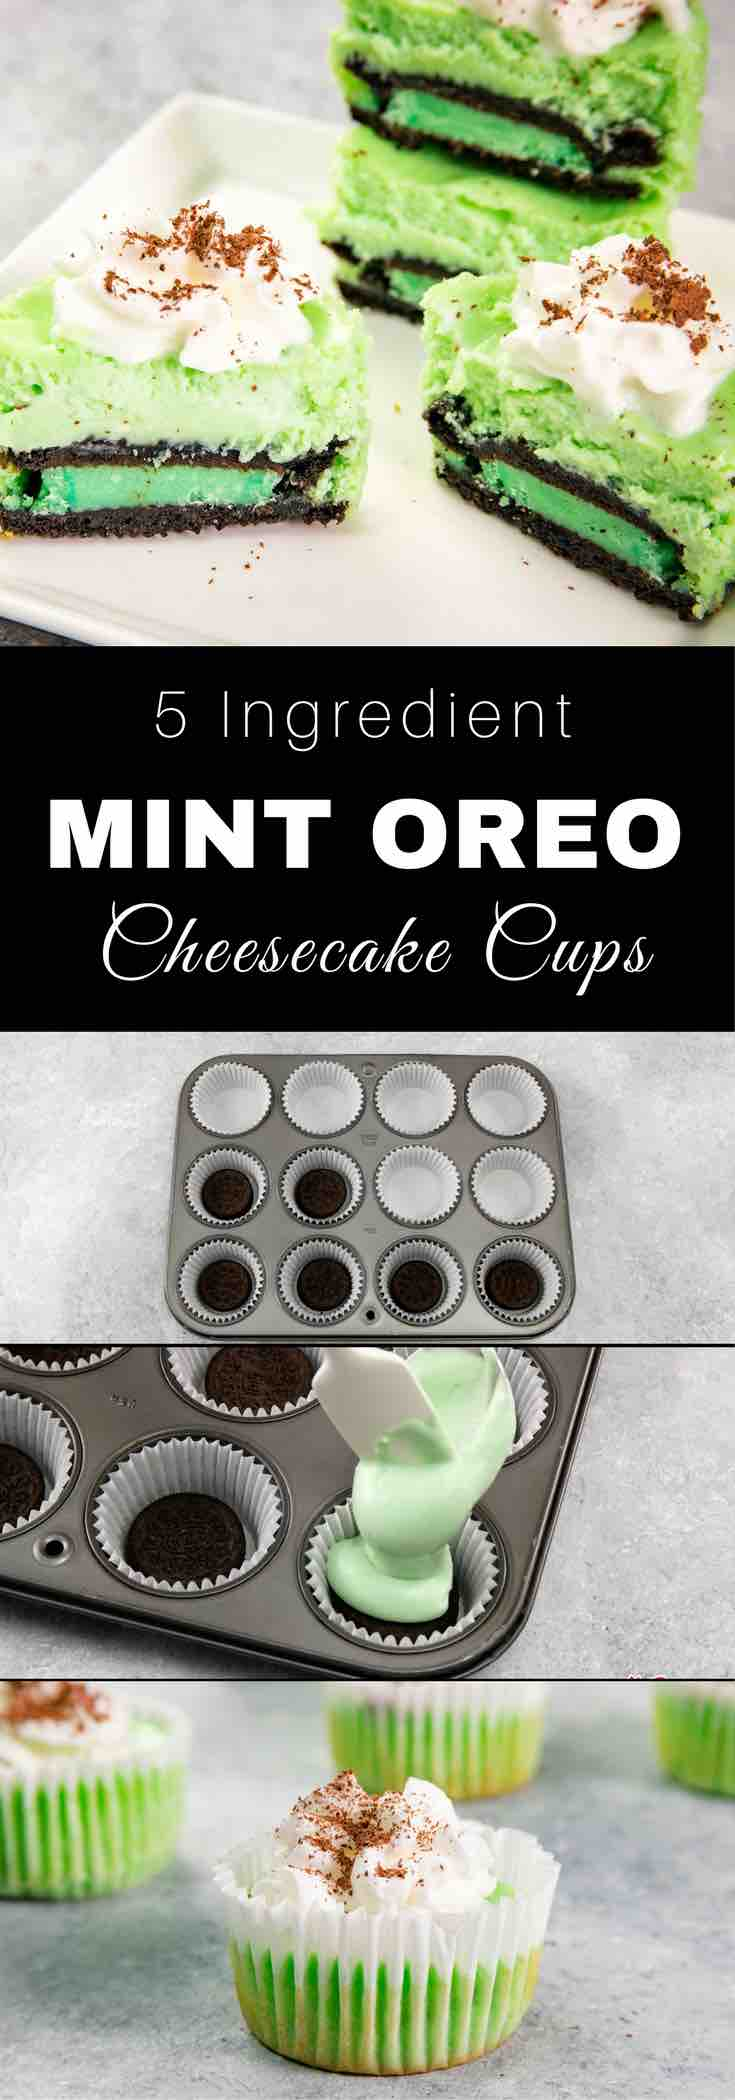 Mini Mint Oreo Cheesecake Cupcakes – Absolutely delicious and super easy to make with only 5 ingredients: mint Oreos, cream cheese, sugar, eggs and crème de menthe. Mint Oreo crust topped with a smooth and creamy cheesecake filling. The perfect quick and easy spring dessert recipe that everyone will LOVE! Video recipe. | Tipbuzz.com